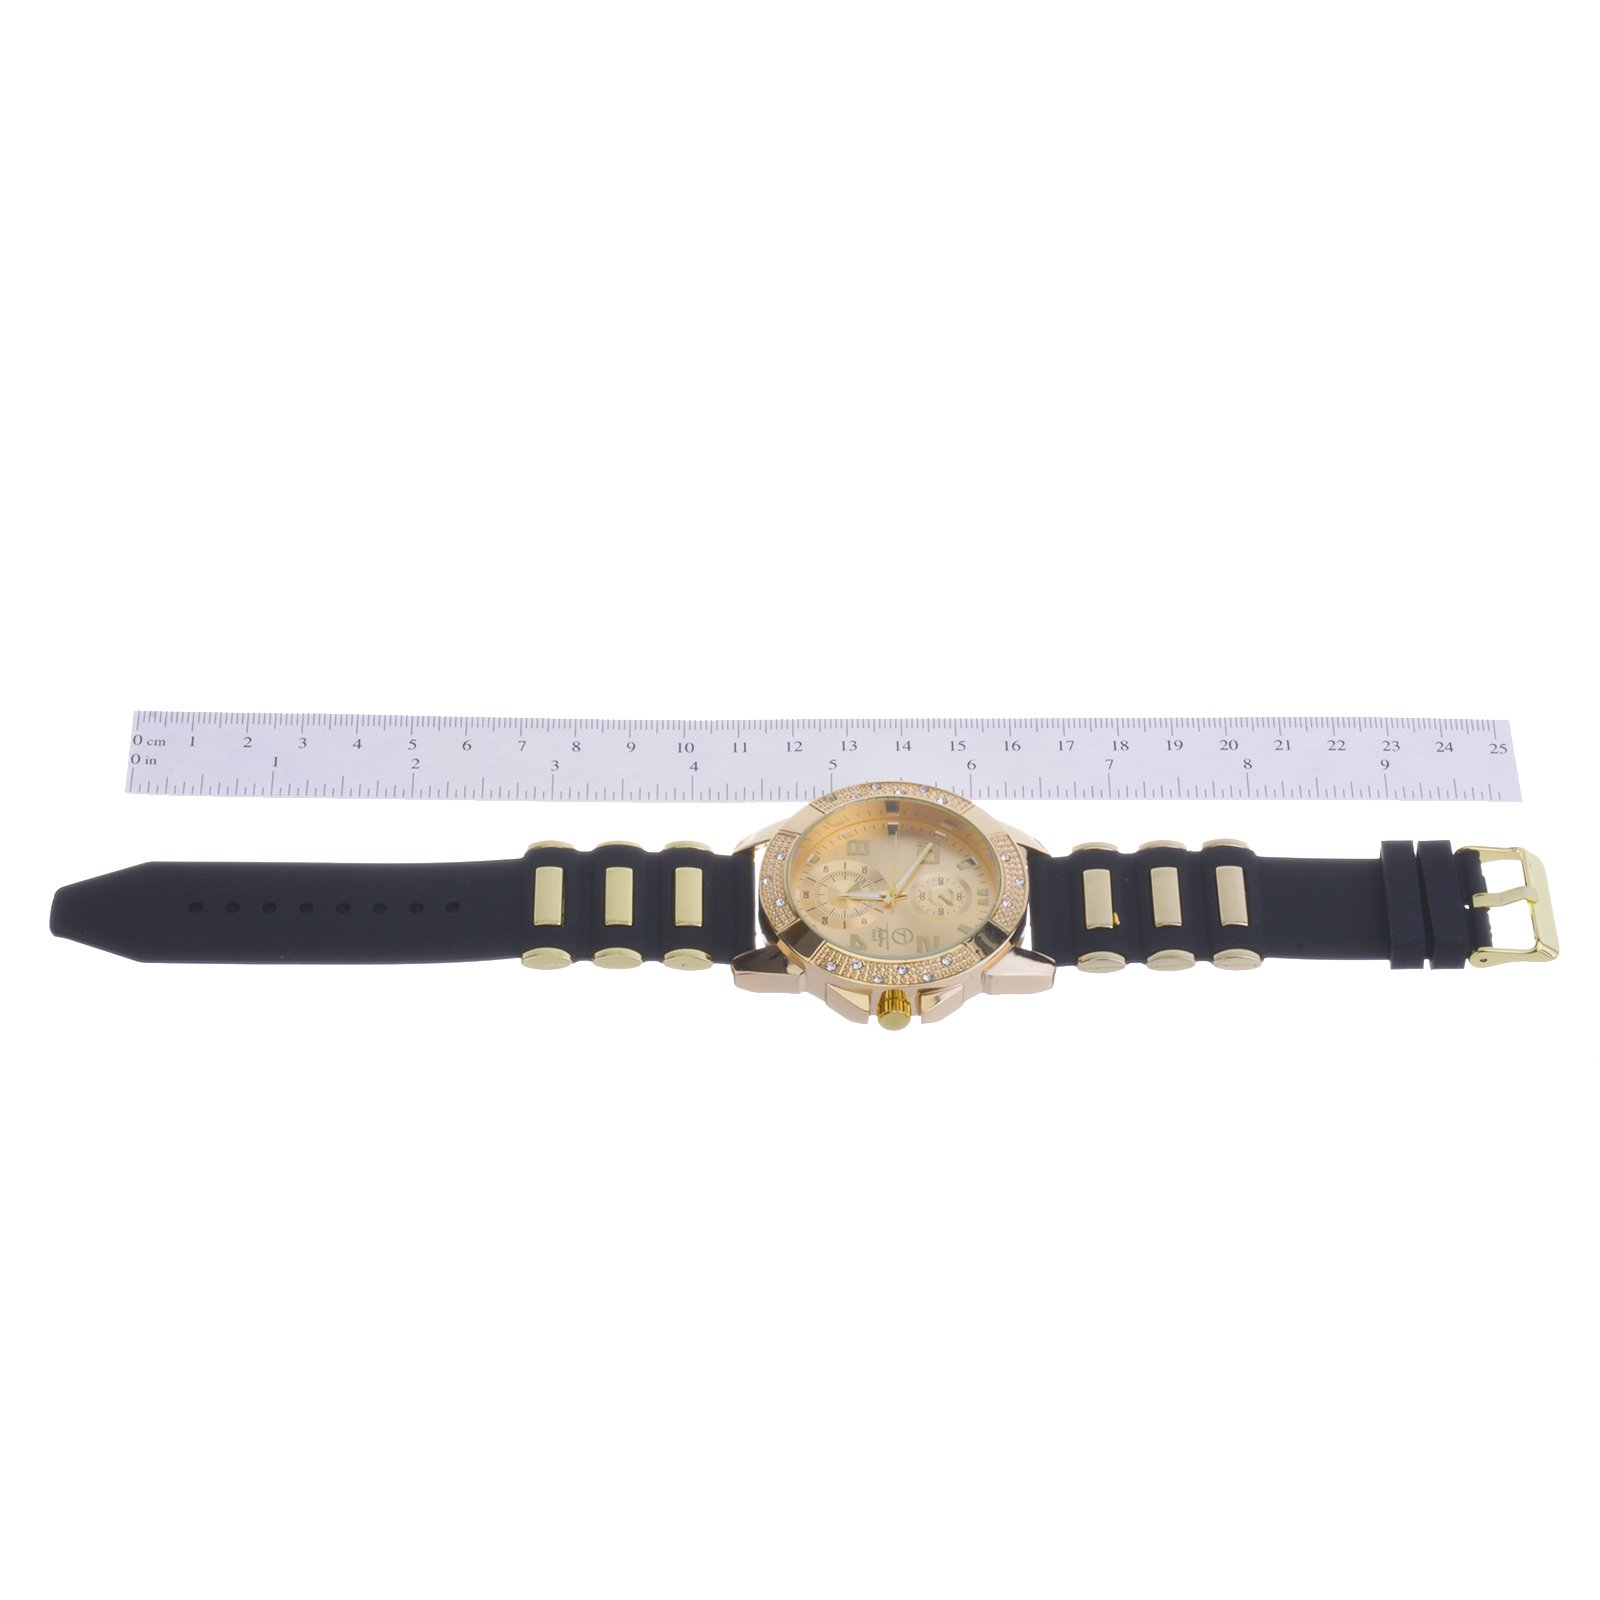 Men's Fashion Hip Hop Bling Iced Out Gold Plated Black Silicon Band Watch WR 8485 GBK by Techno Pave (Image #3)